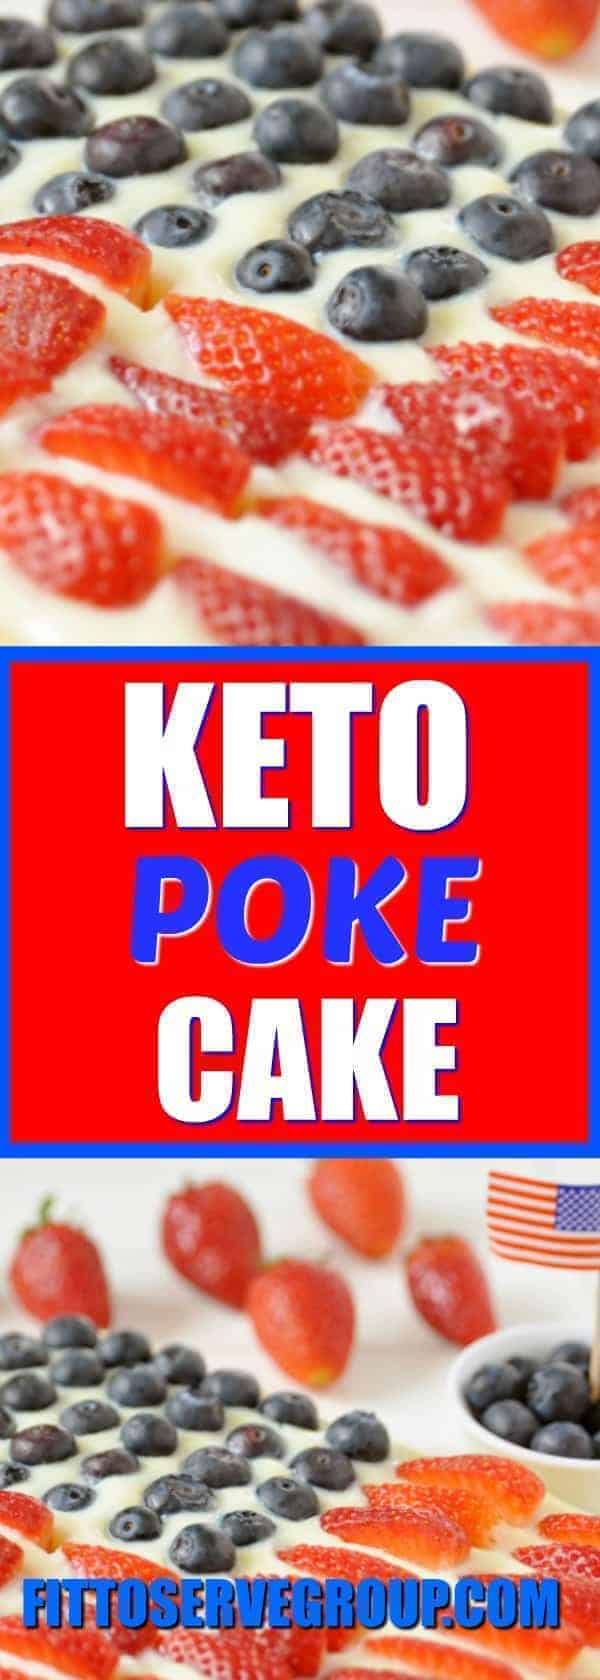 This delicious keto poke cake is decorated to look like an American flag. It's a perfect low carb poke cake for the 4th of July, Memorial Day, and Veterans Day. #ketopokecake #pokecake #lowcarbcake #lowcarbpokecake